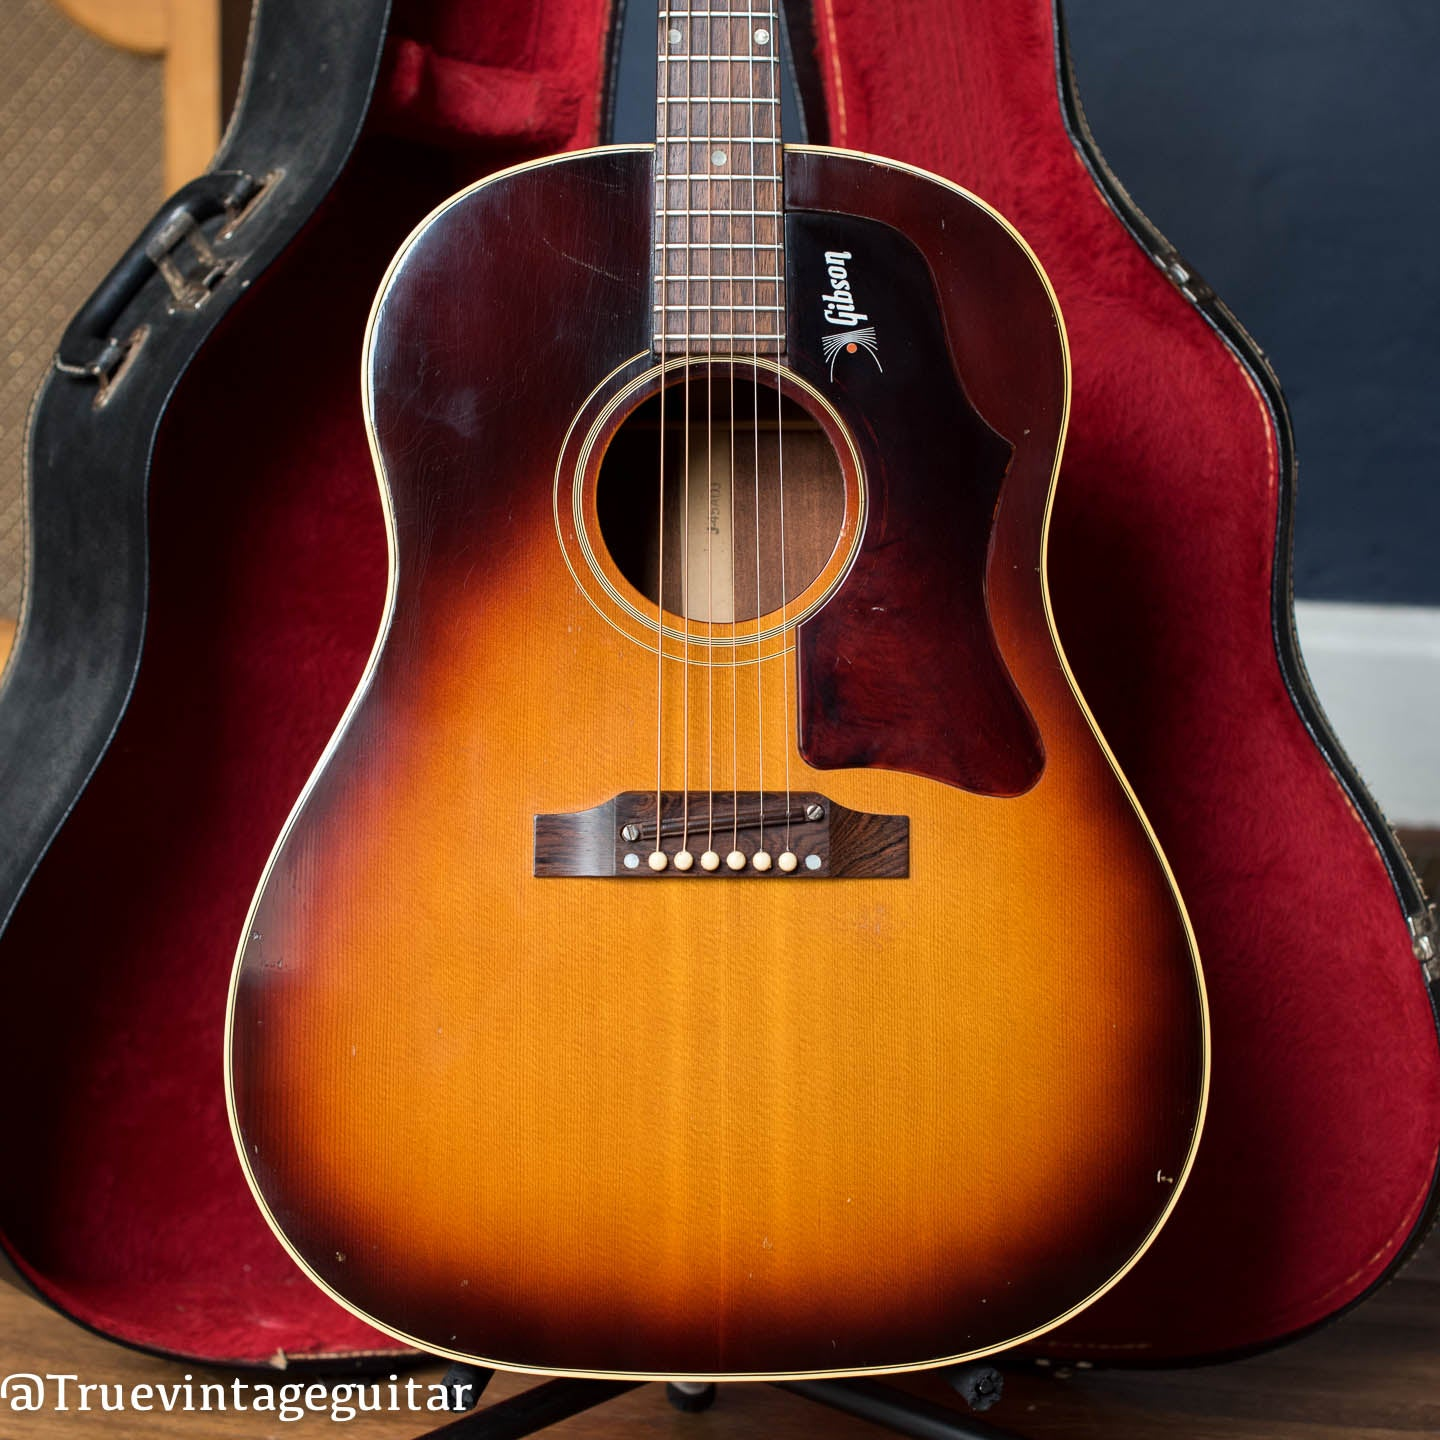 vintage 1960s Gibson acoustic guitar